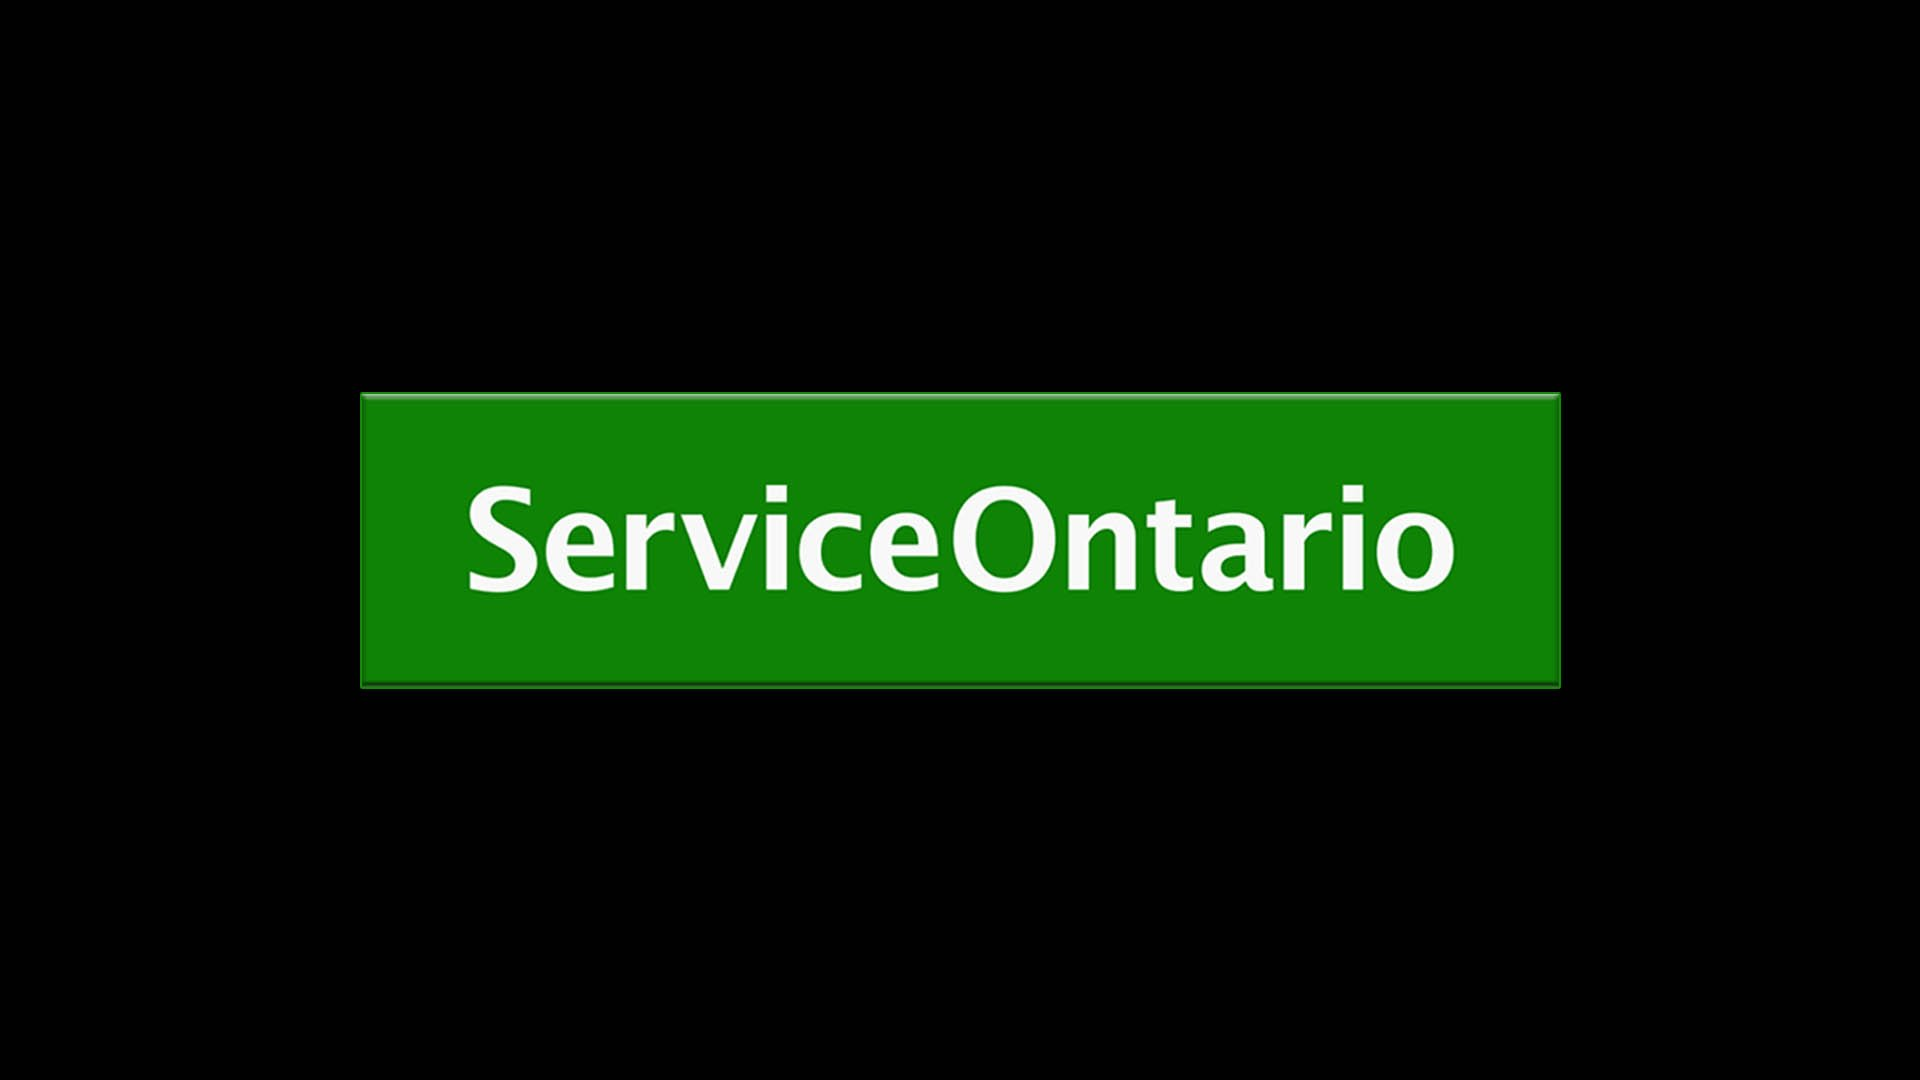 Operators of ServiceOntario office threaten to leave Beaverton after rental dispute with Township